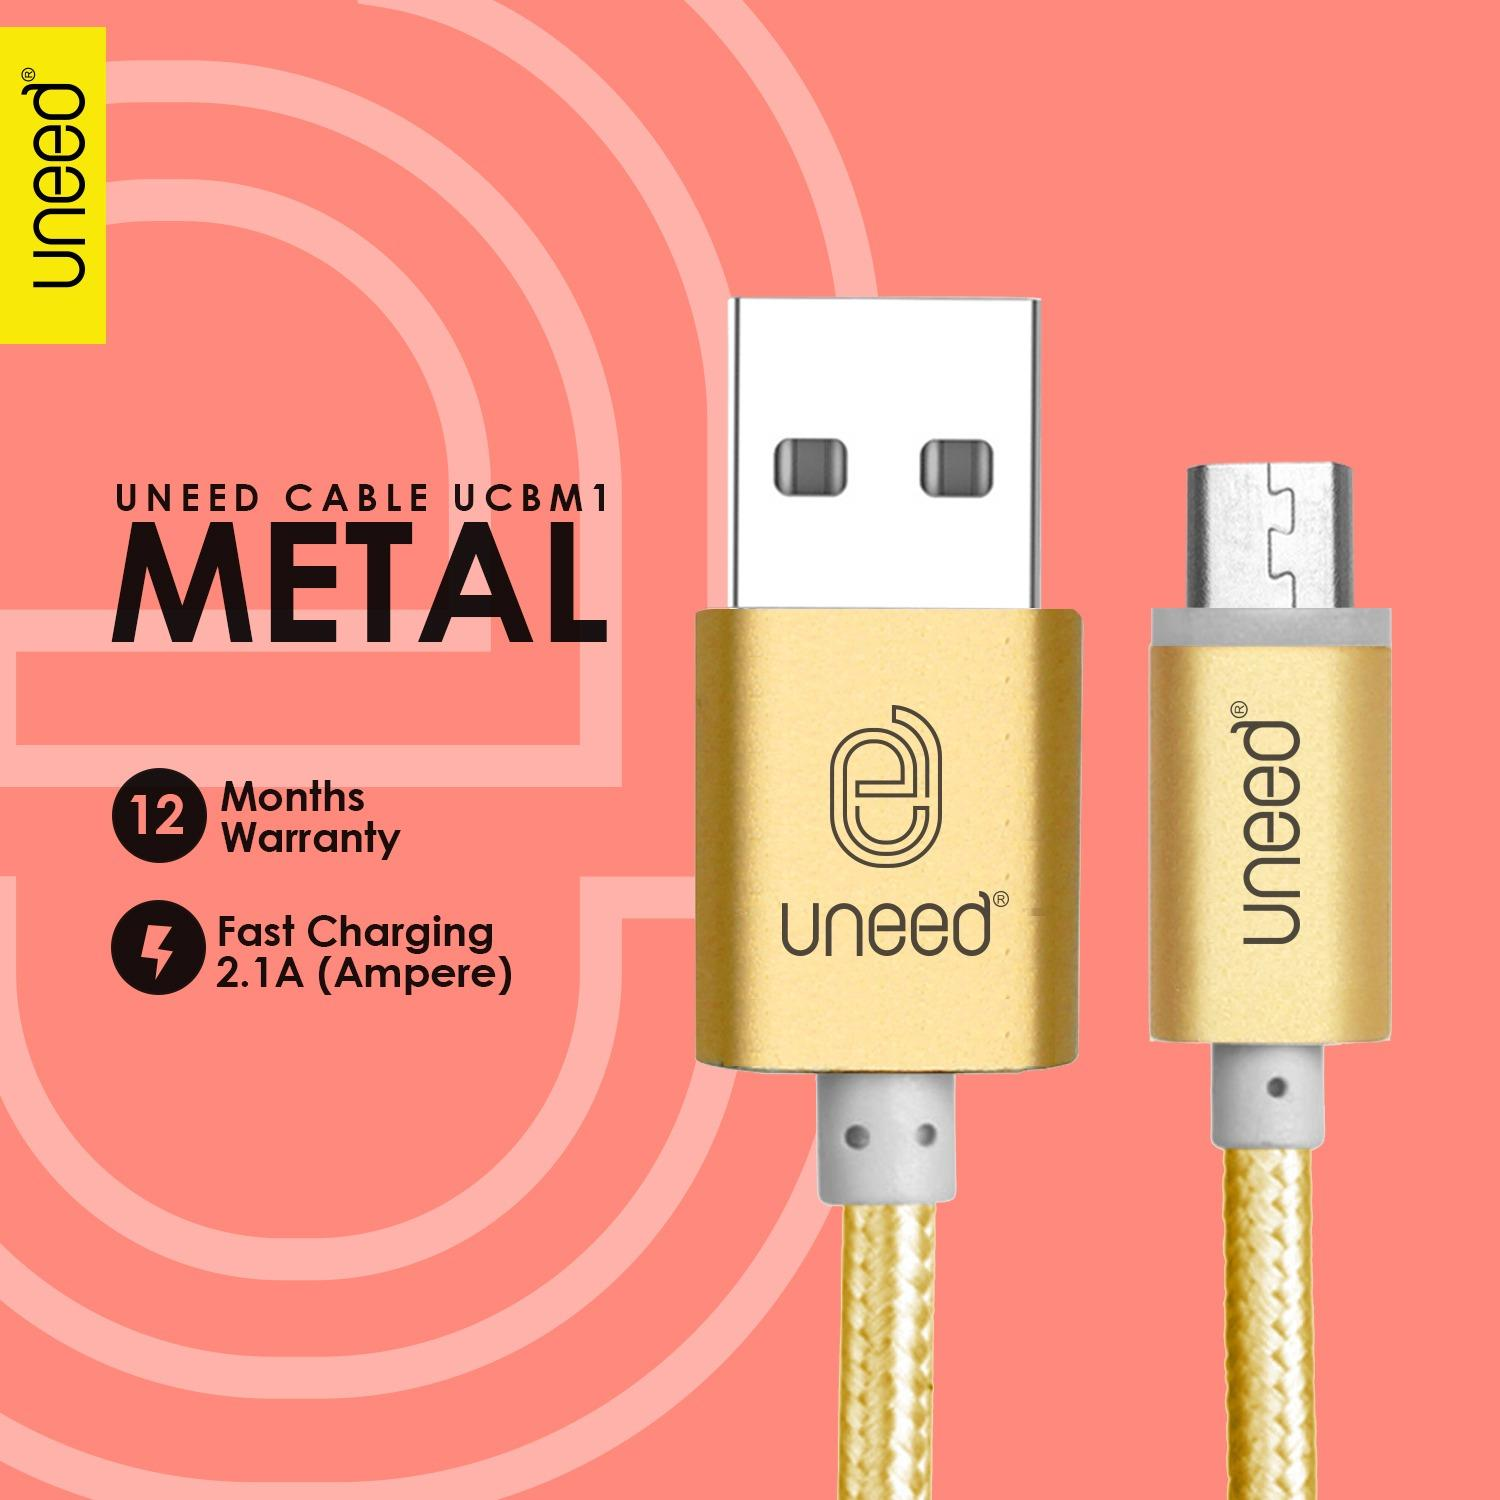 UNEED Nylon Kabel Data Micro USB Metal Quick Charge Fast Charging 2.1A - Original - Gold